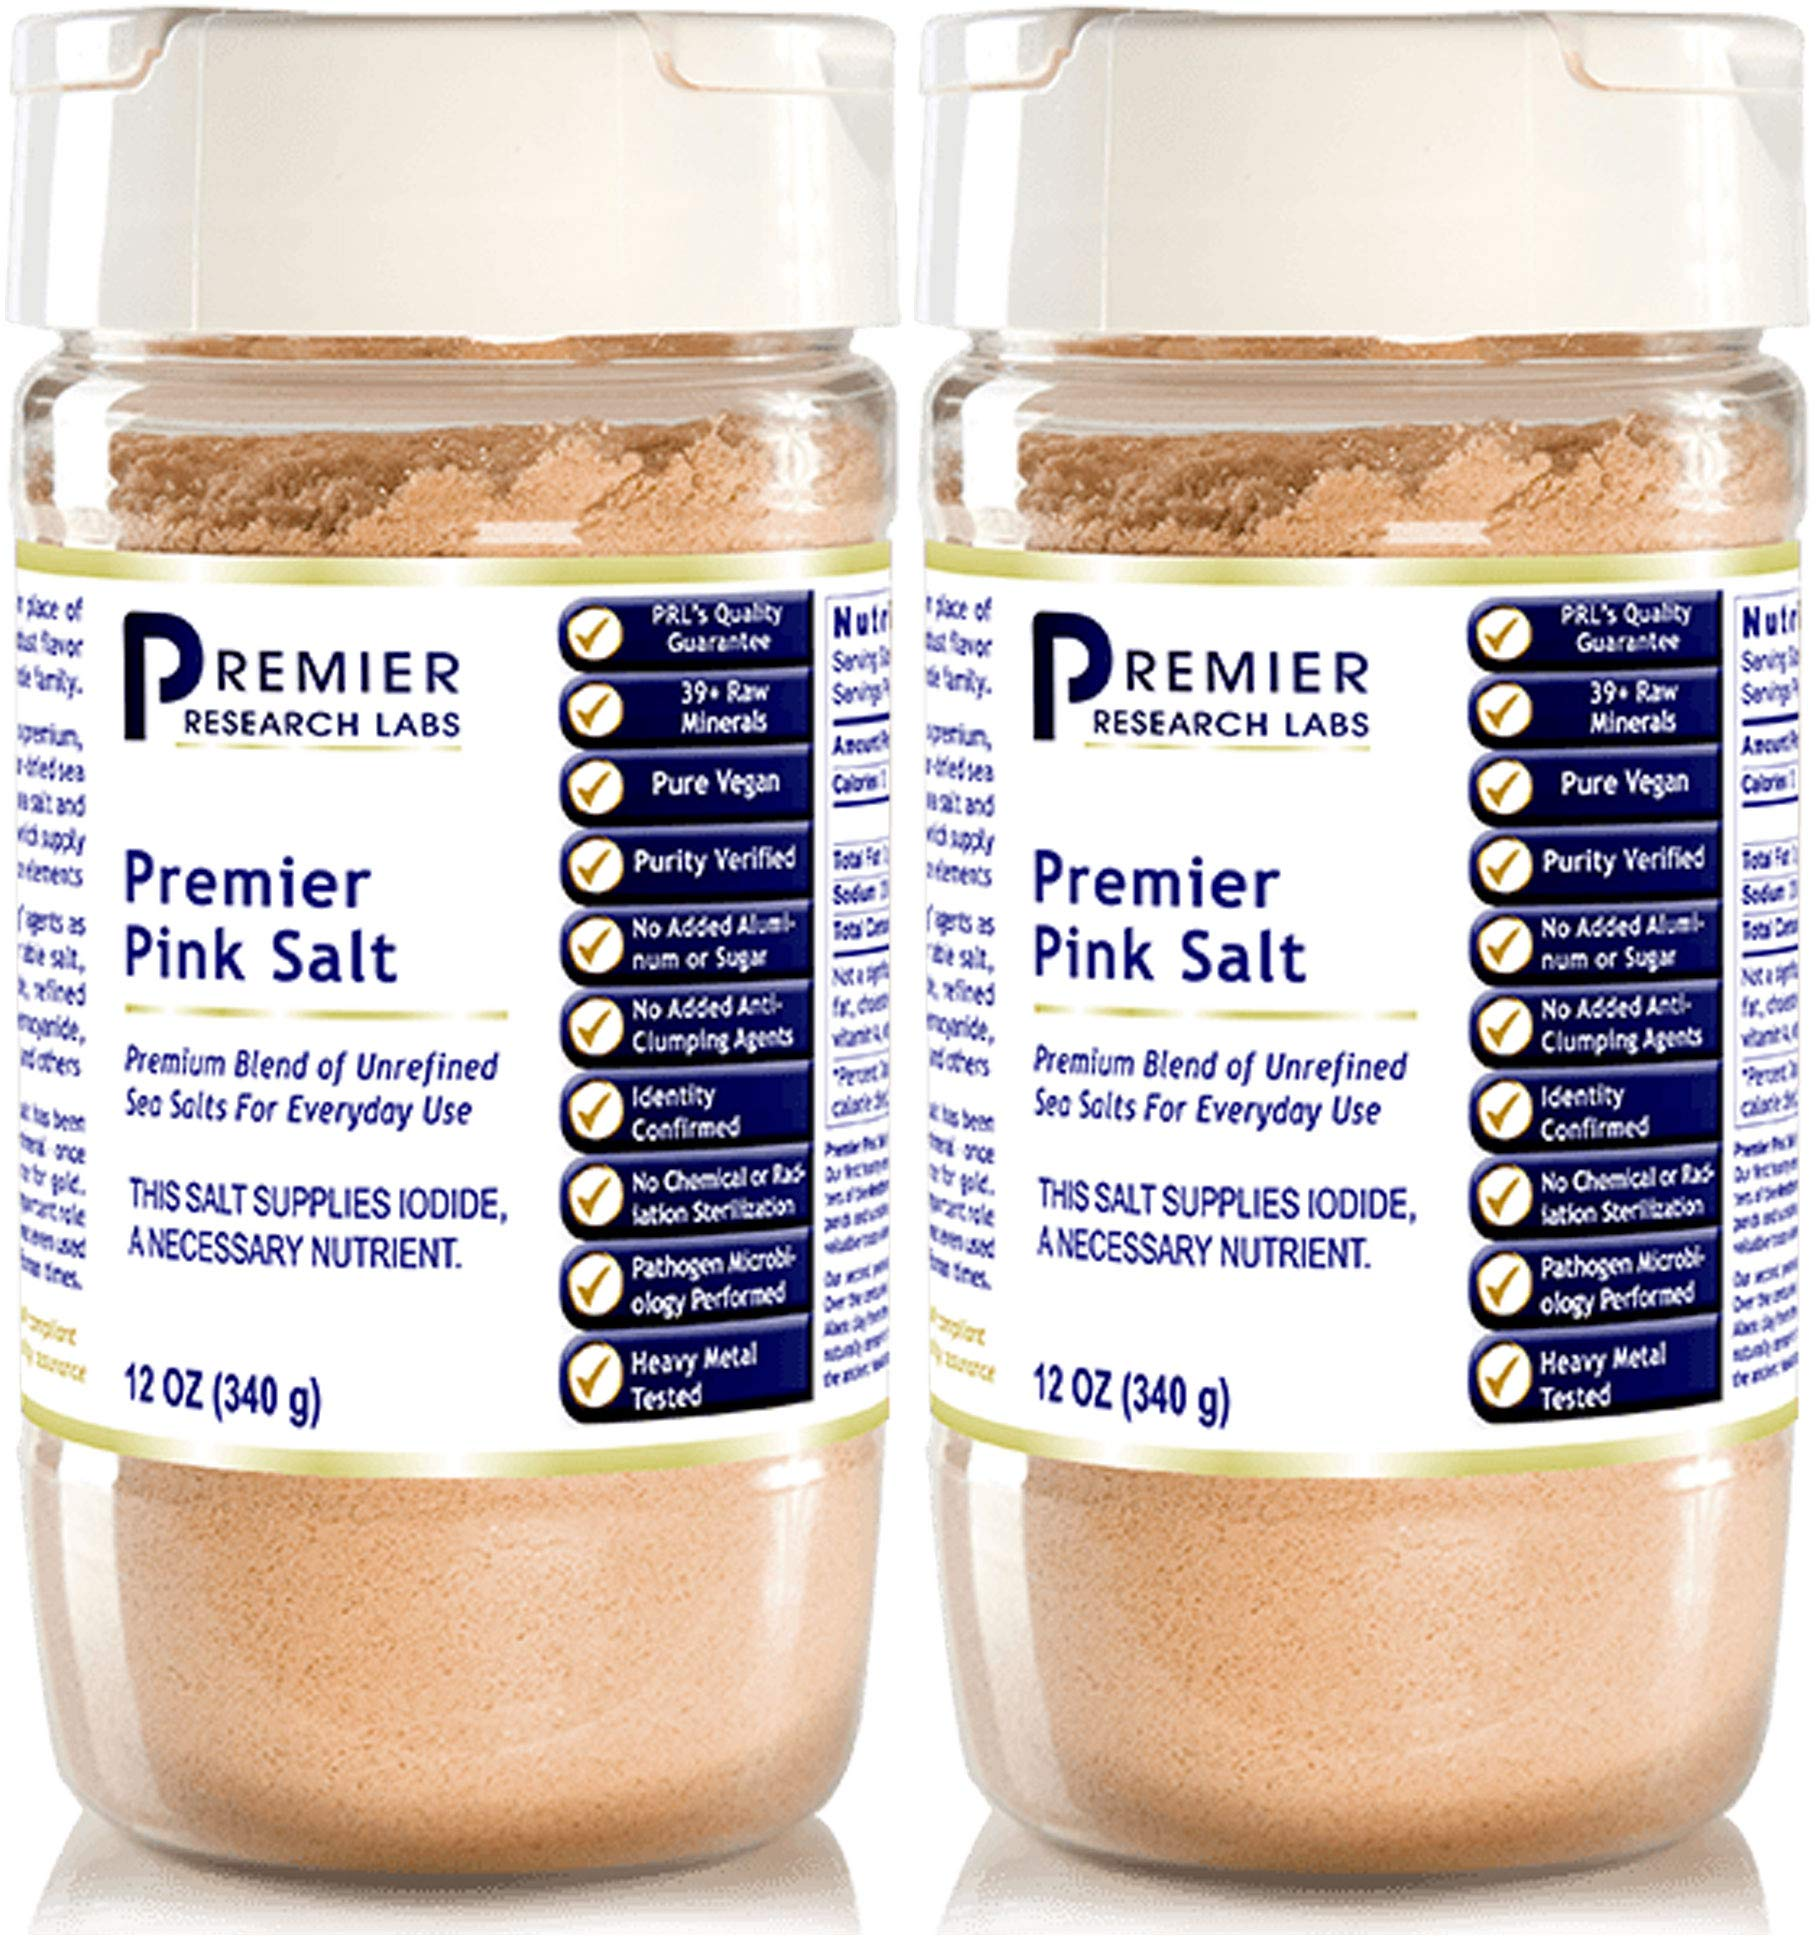 Premier Research Labs - Pink Salt, 12 Oz - 2 Pack